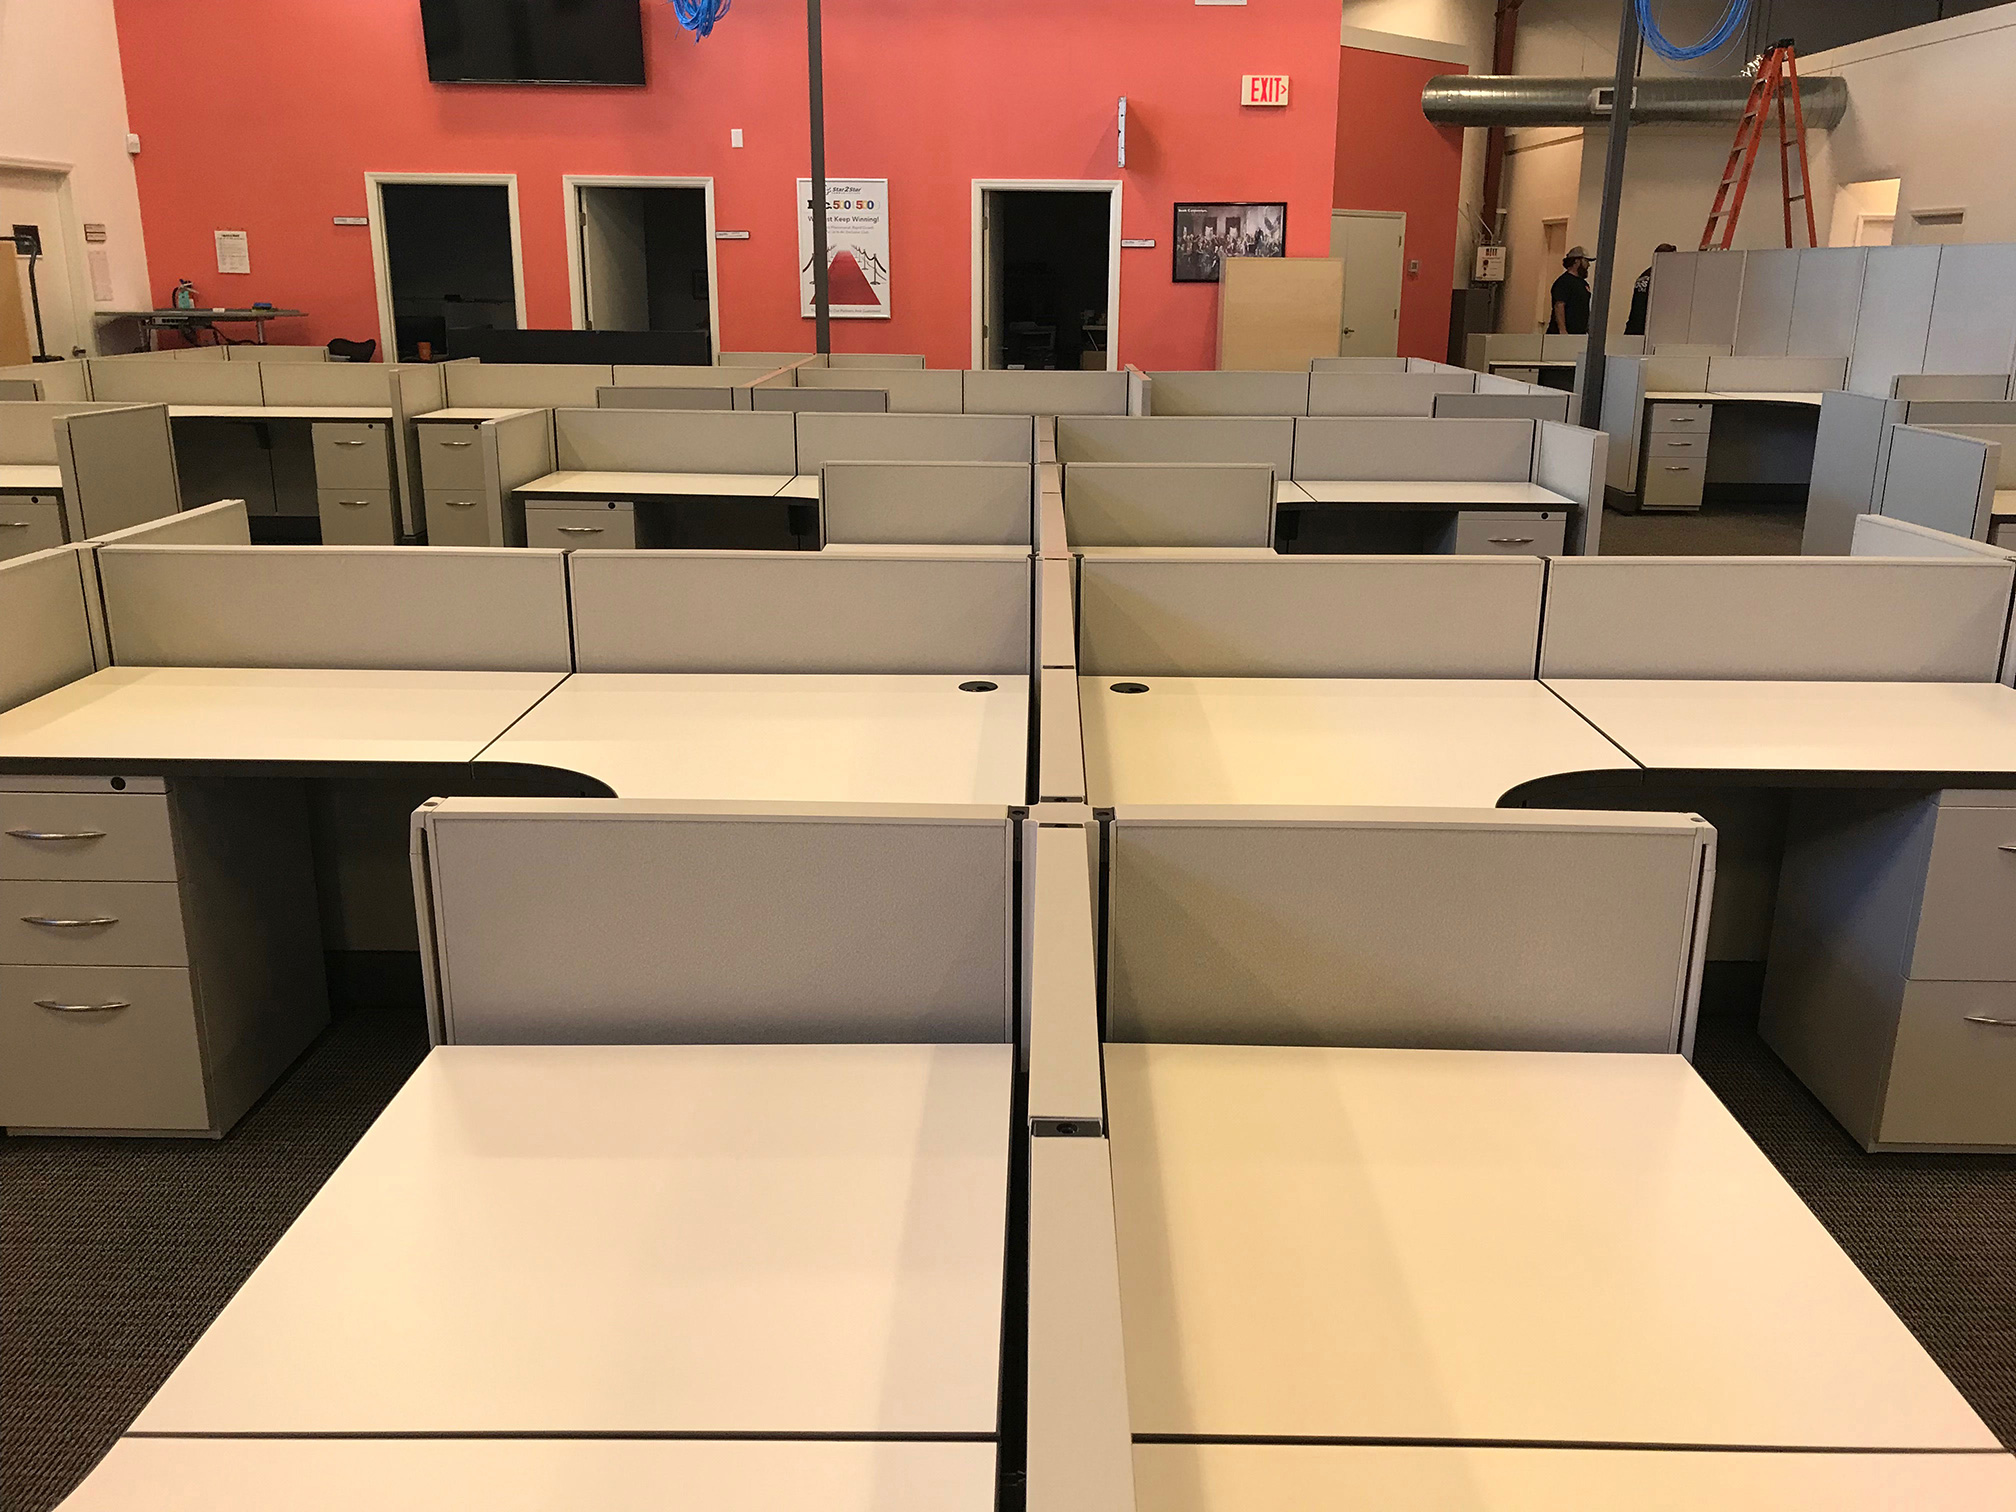 office-cubicles-for-sale-in-pensacola-florida-3.jpg